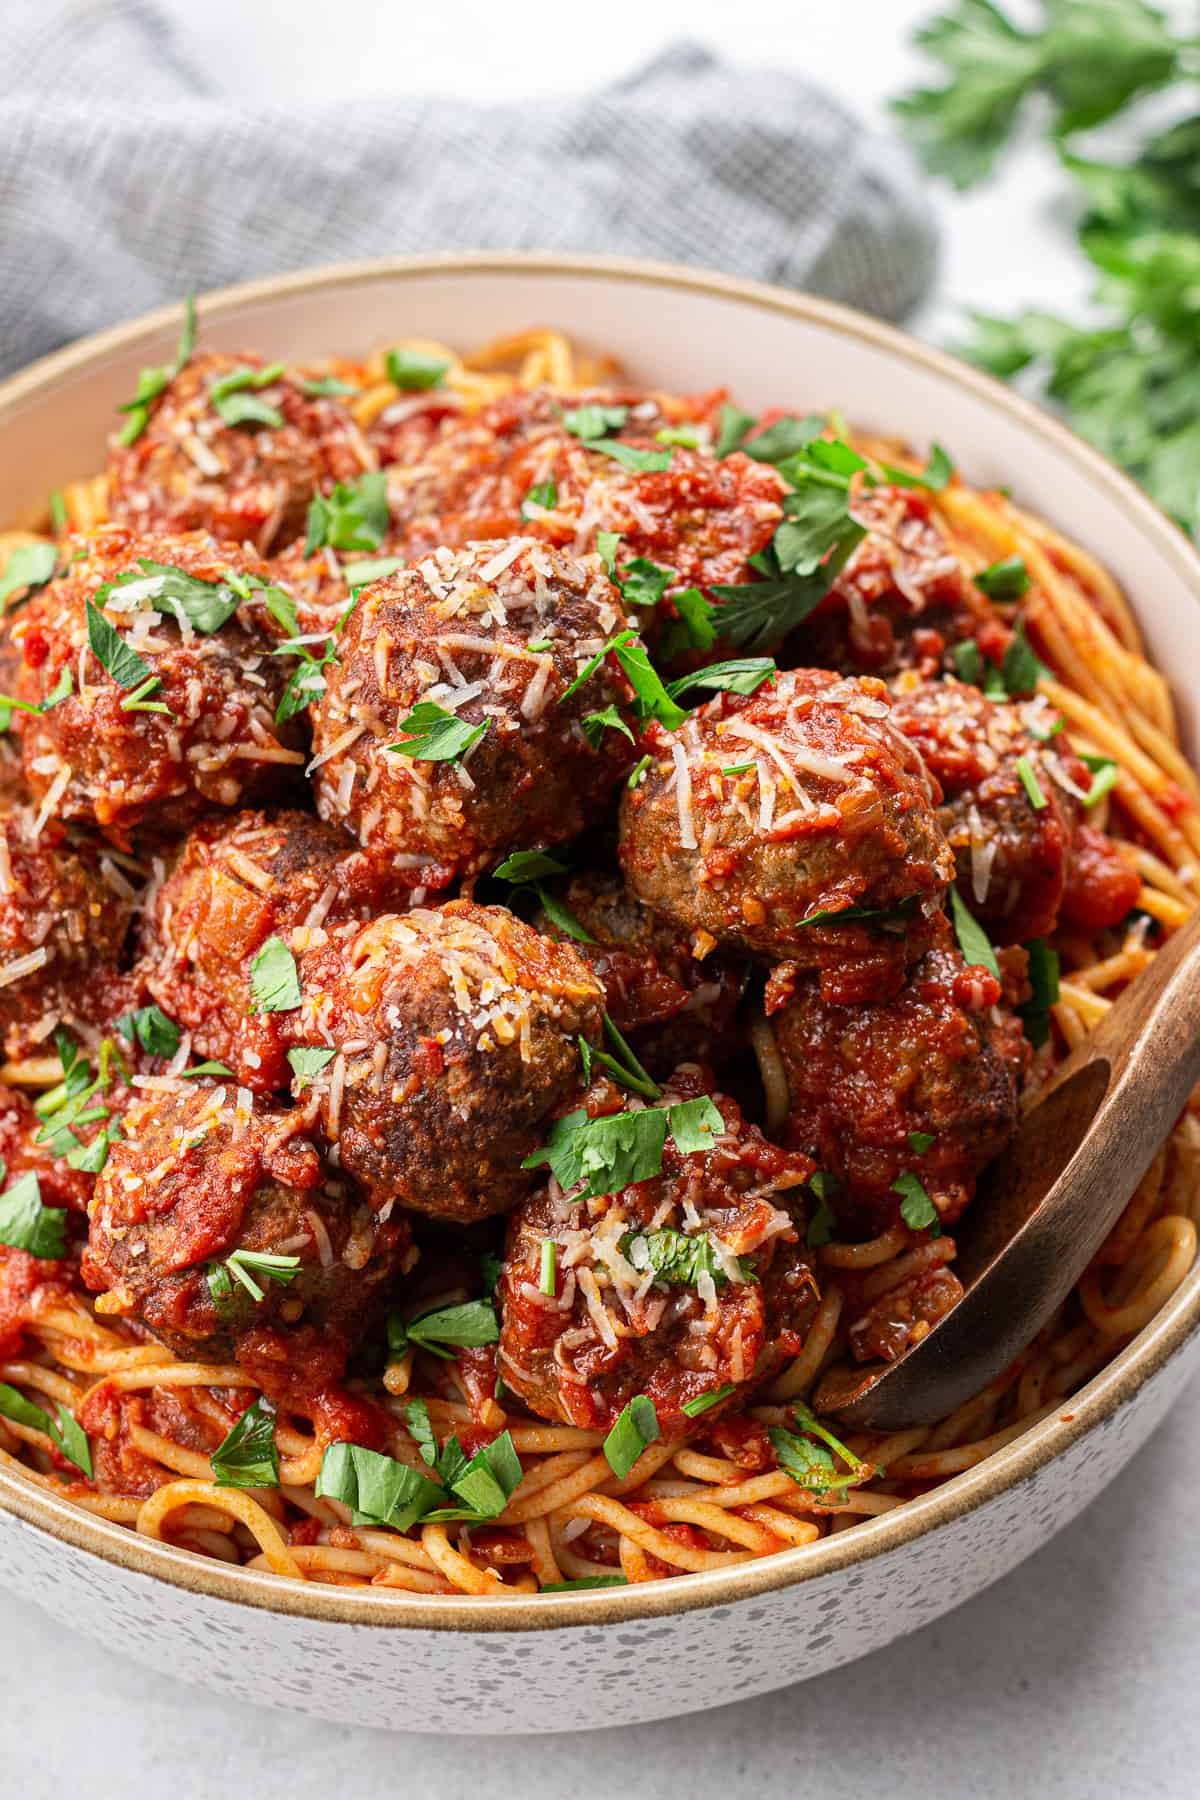 Spaghetti with meatballs, topped with parmesan and chopped parsley, in a large bowl.